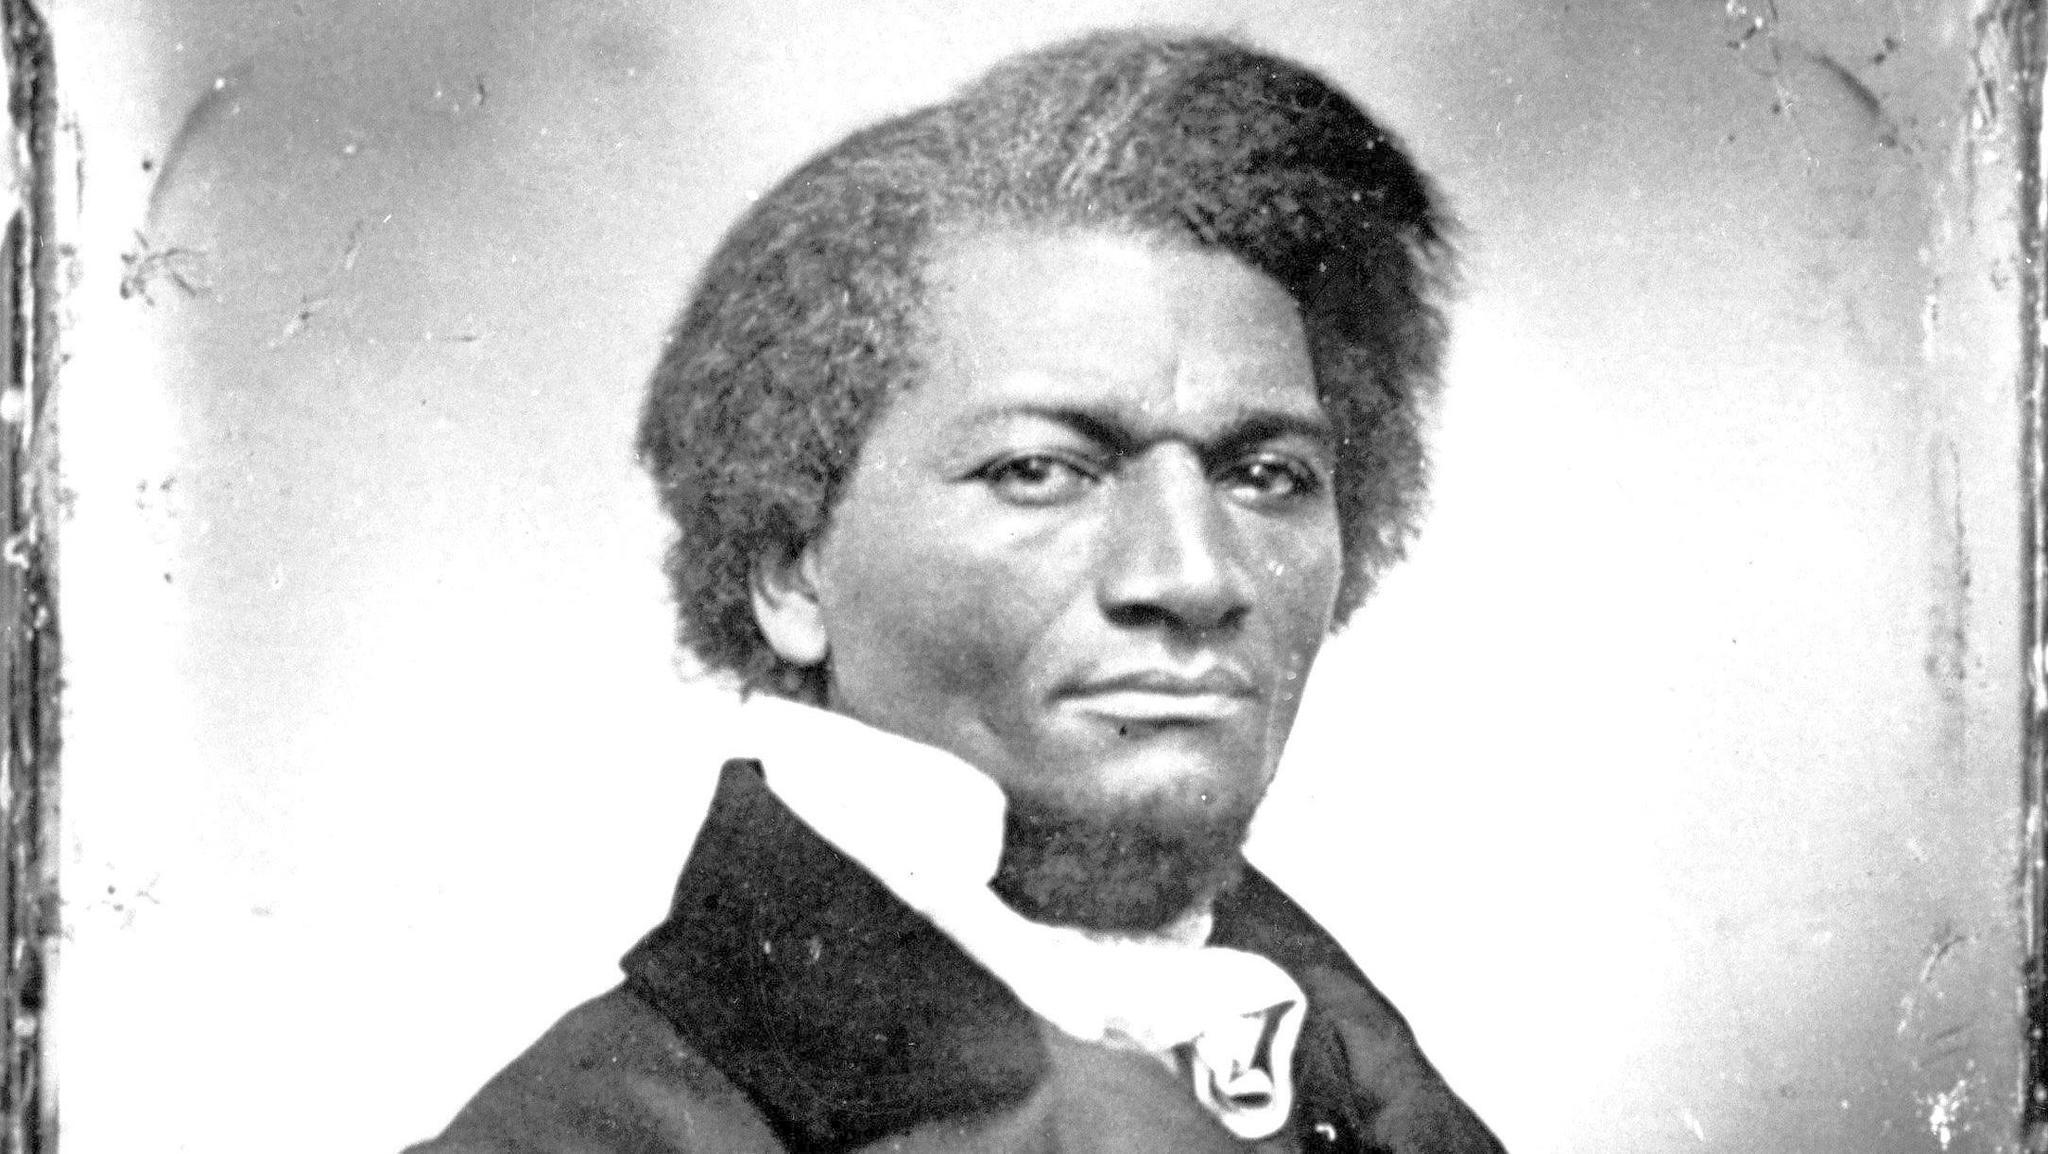 frederick douglass fourth of july essay Frederick douglass july 5  the papers and placards say, that i am to deliver a  4th [of] july oration  this, for the purpose of this celebration, is the 4th of july.